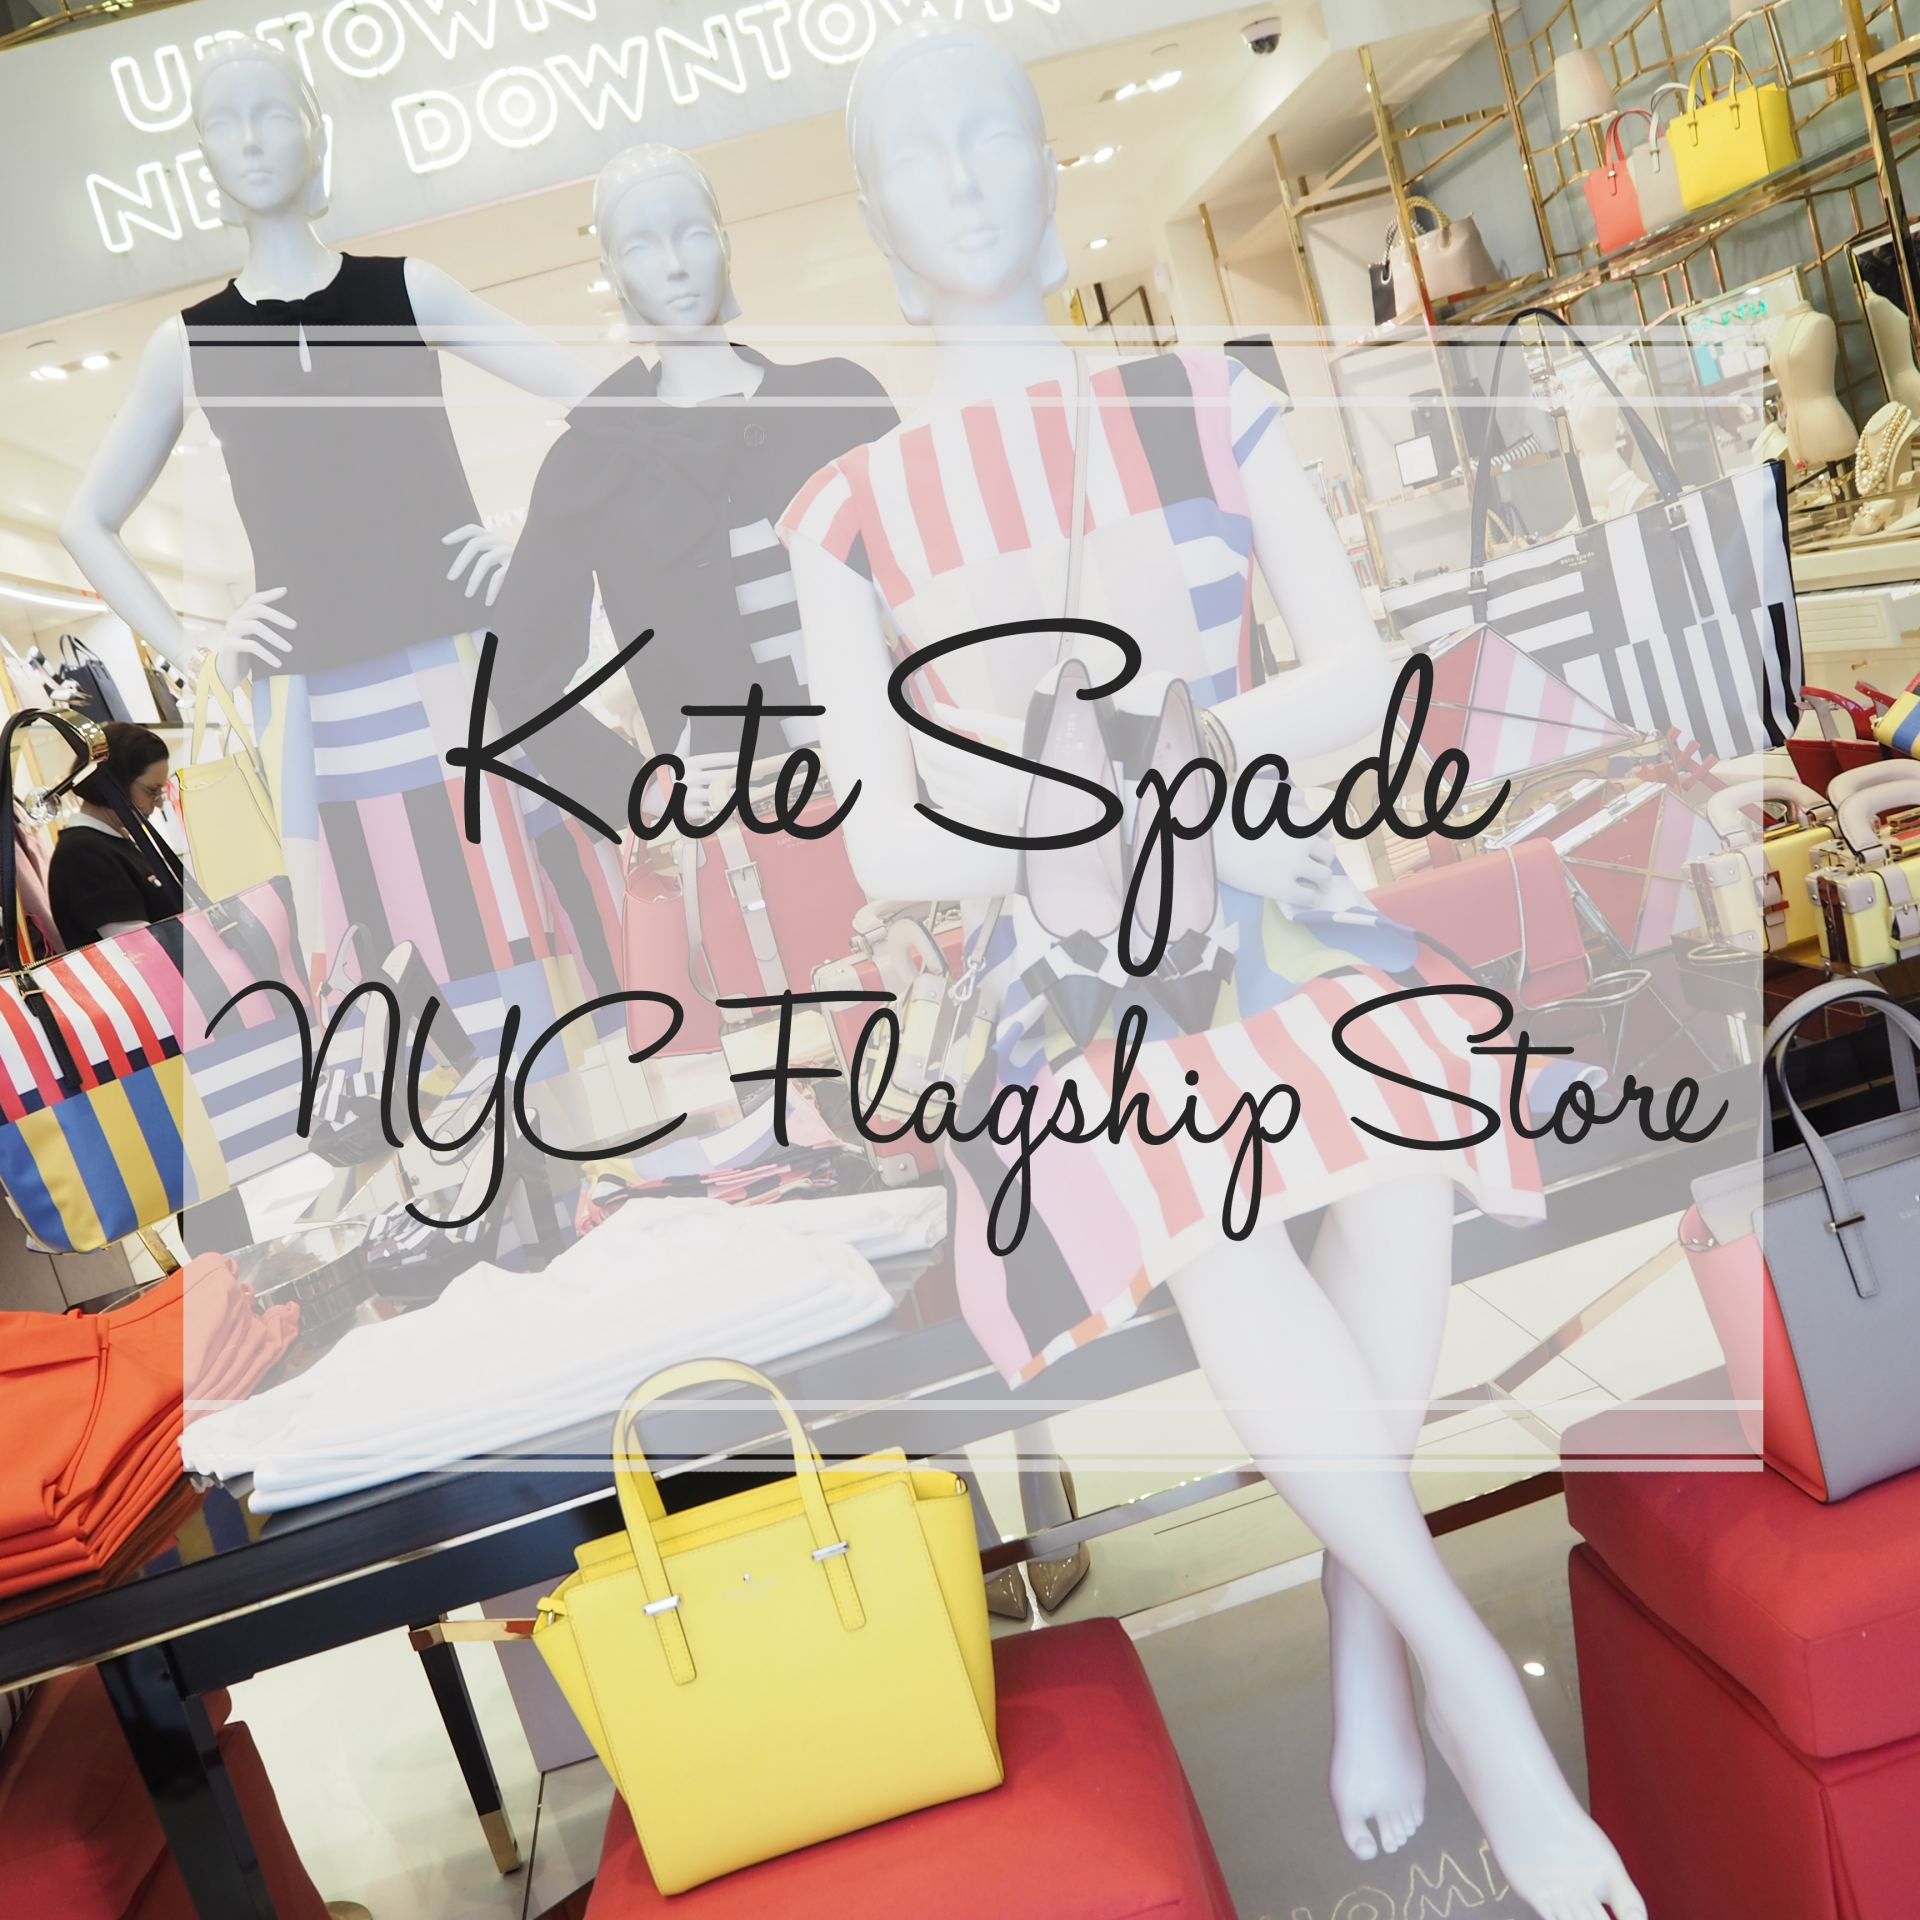 KATE SPADE NYC FLAGSHIP STORE